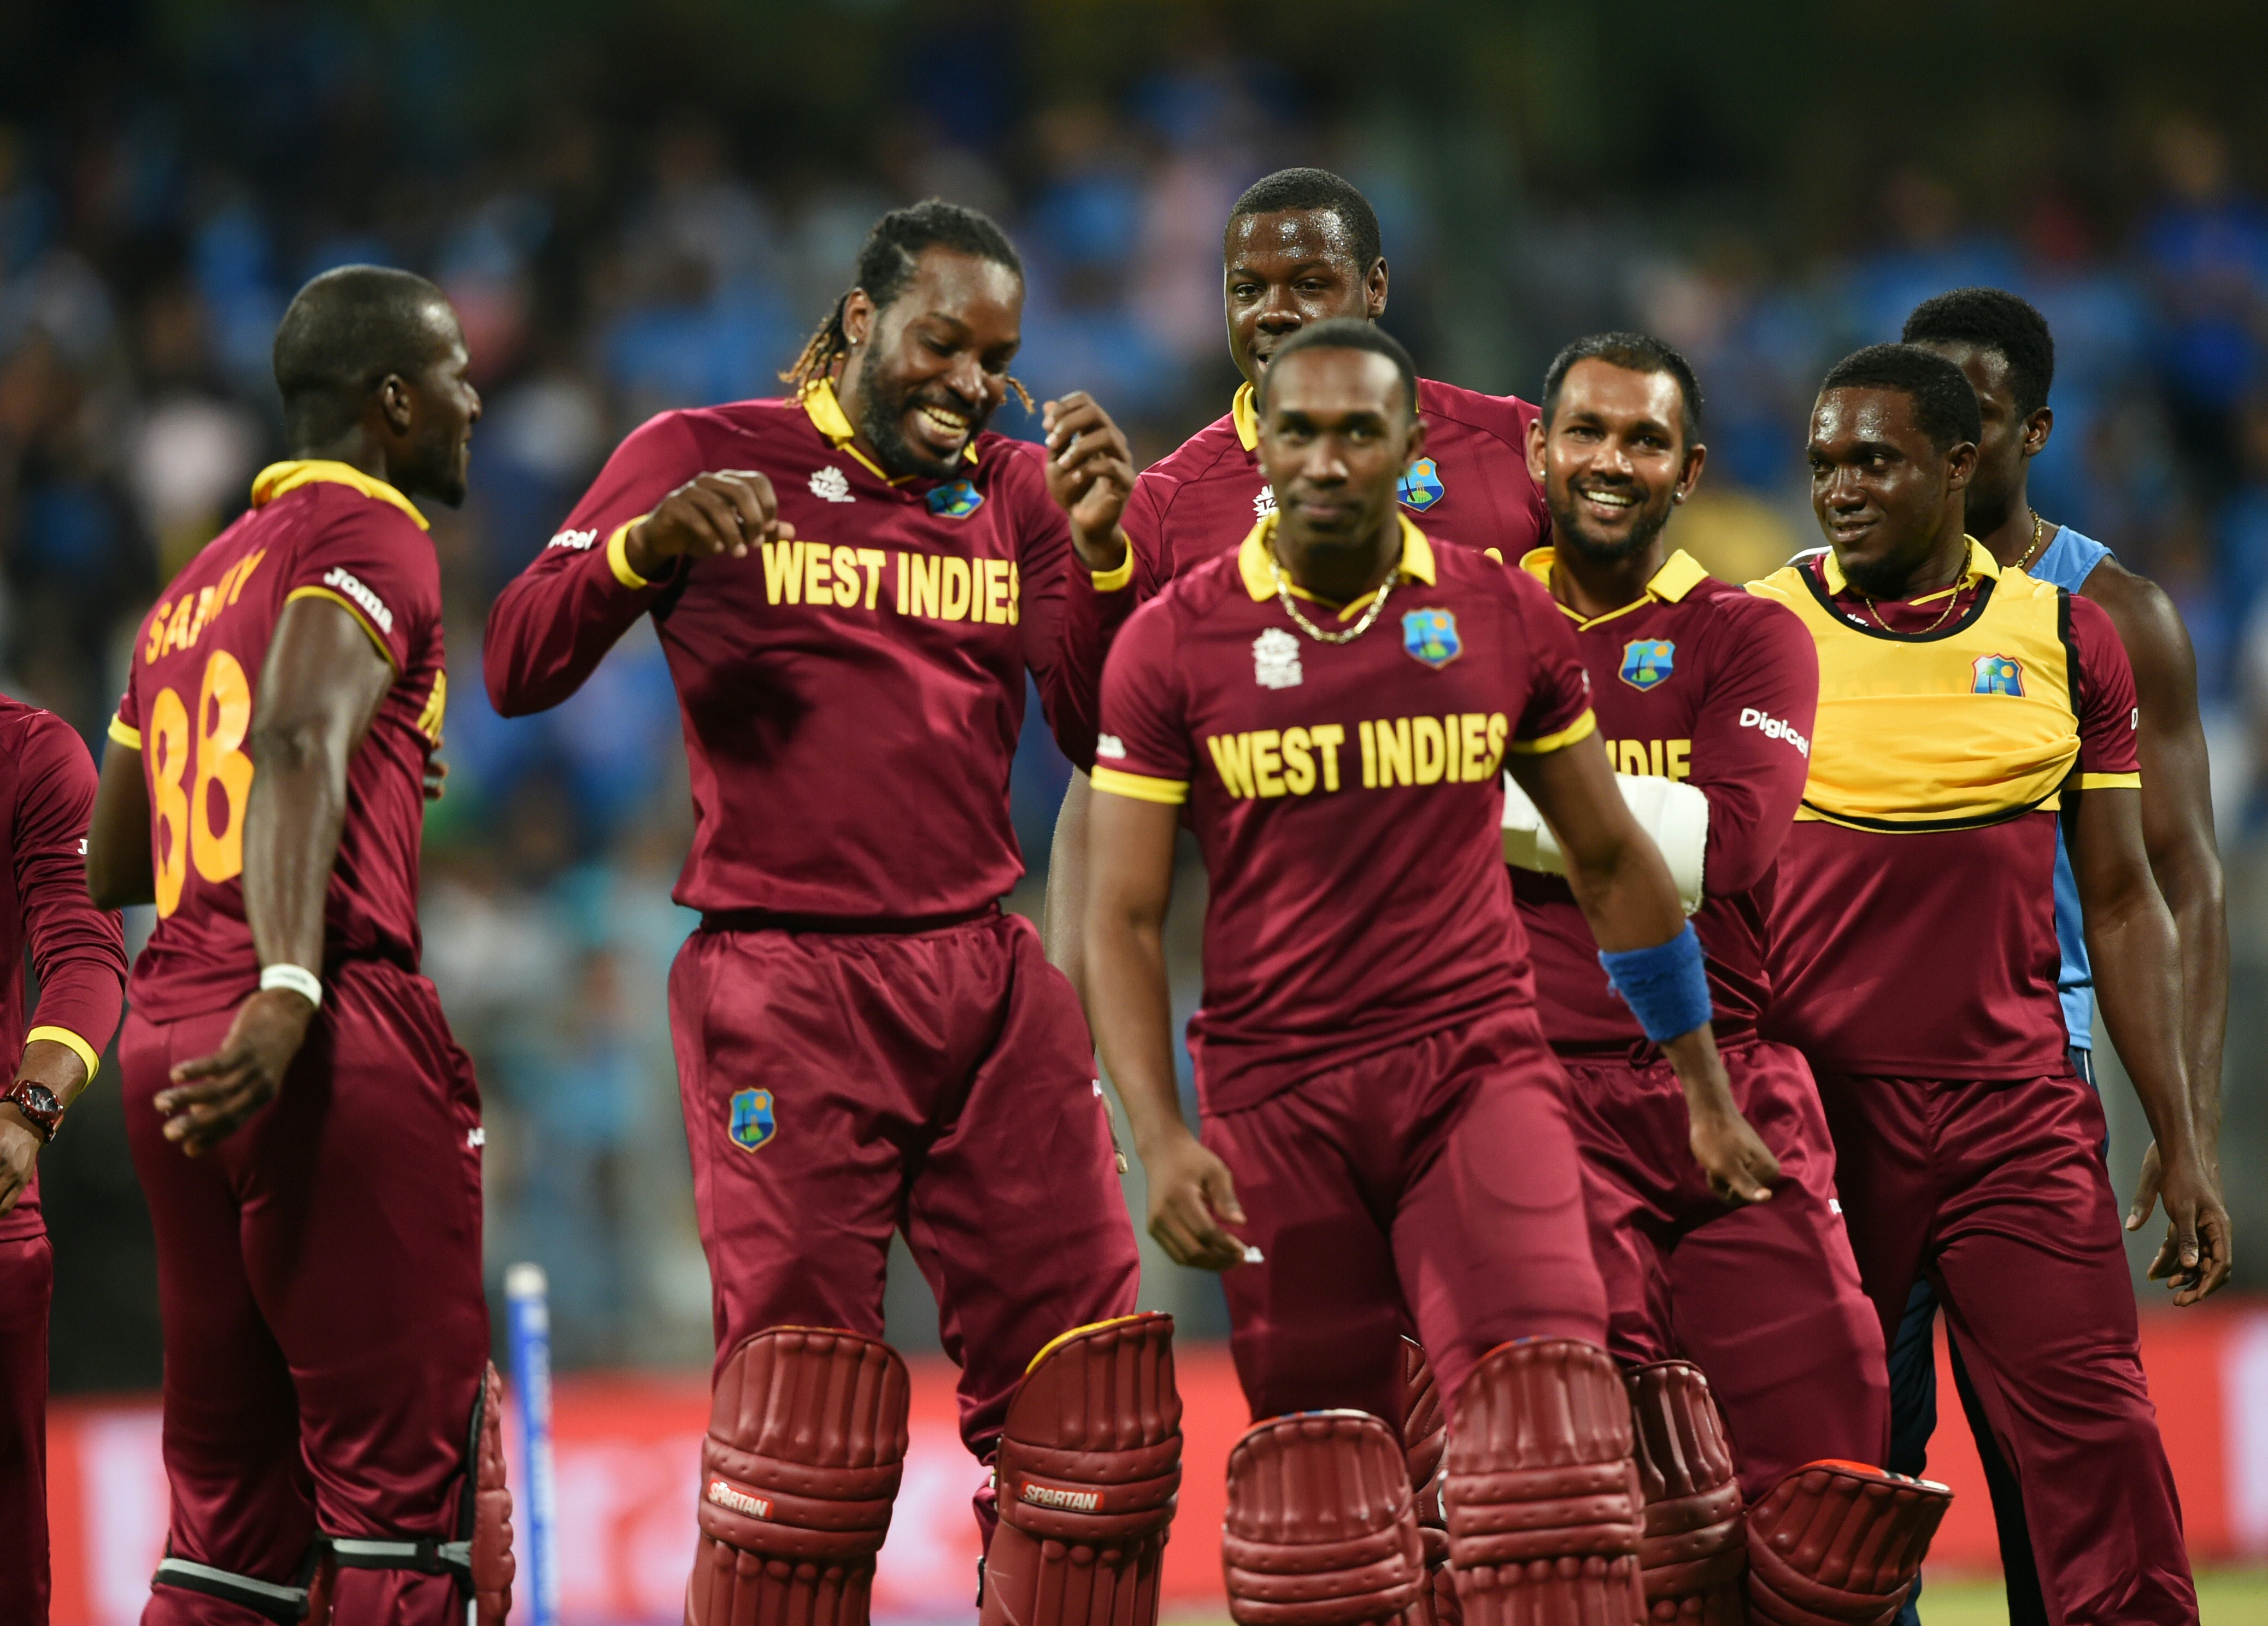 West Indies's captain Darren Sammy(L), Dwayne Bravo(C)and Chris Gayle(2L) lead teammates as they celebrate after victory in the World T20 cricket tournament second semi-final match between India and West Indies at The Wankhede Stadium in Mumbai on March 31, 2016. / AFP / INDRANIL MUKHERJEE